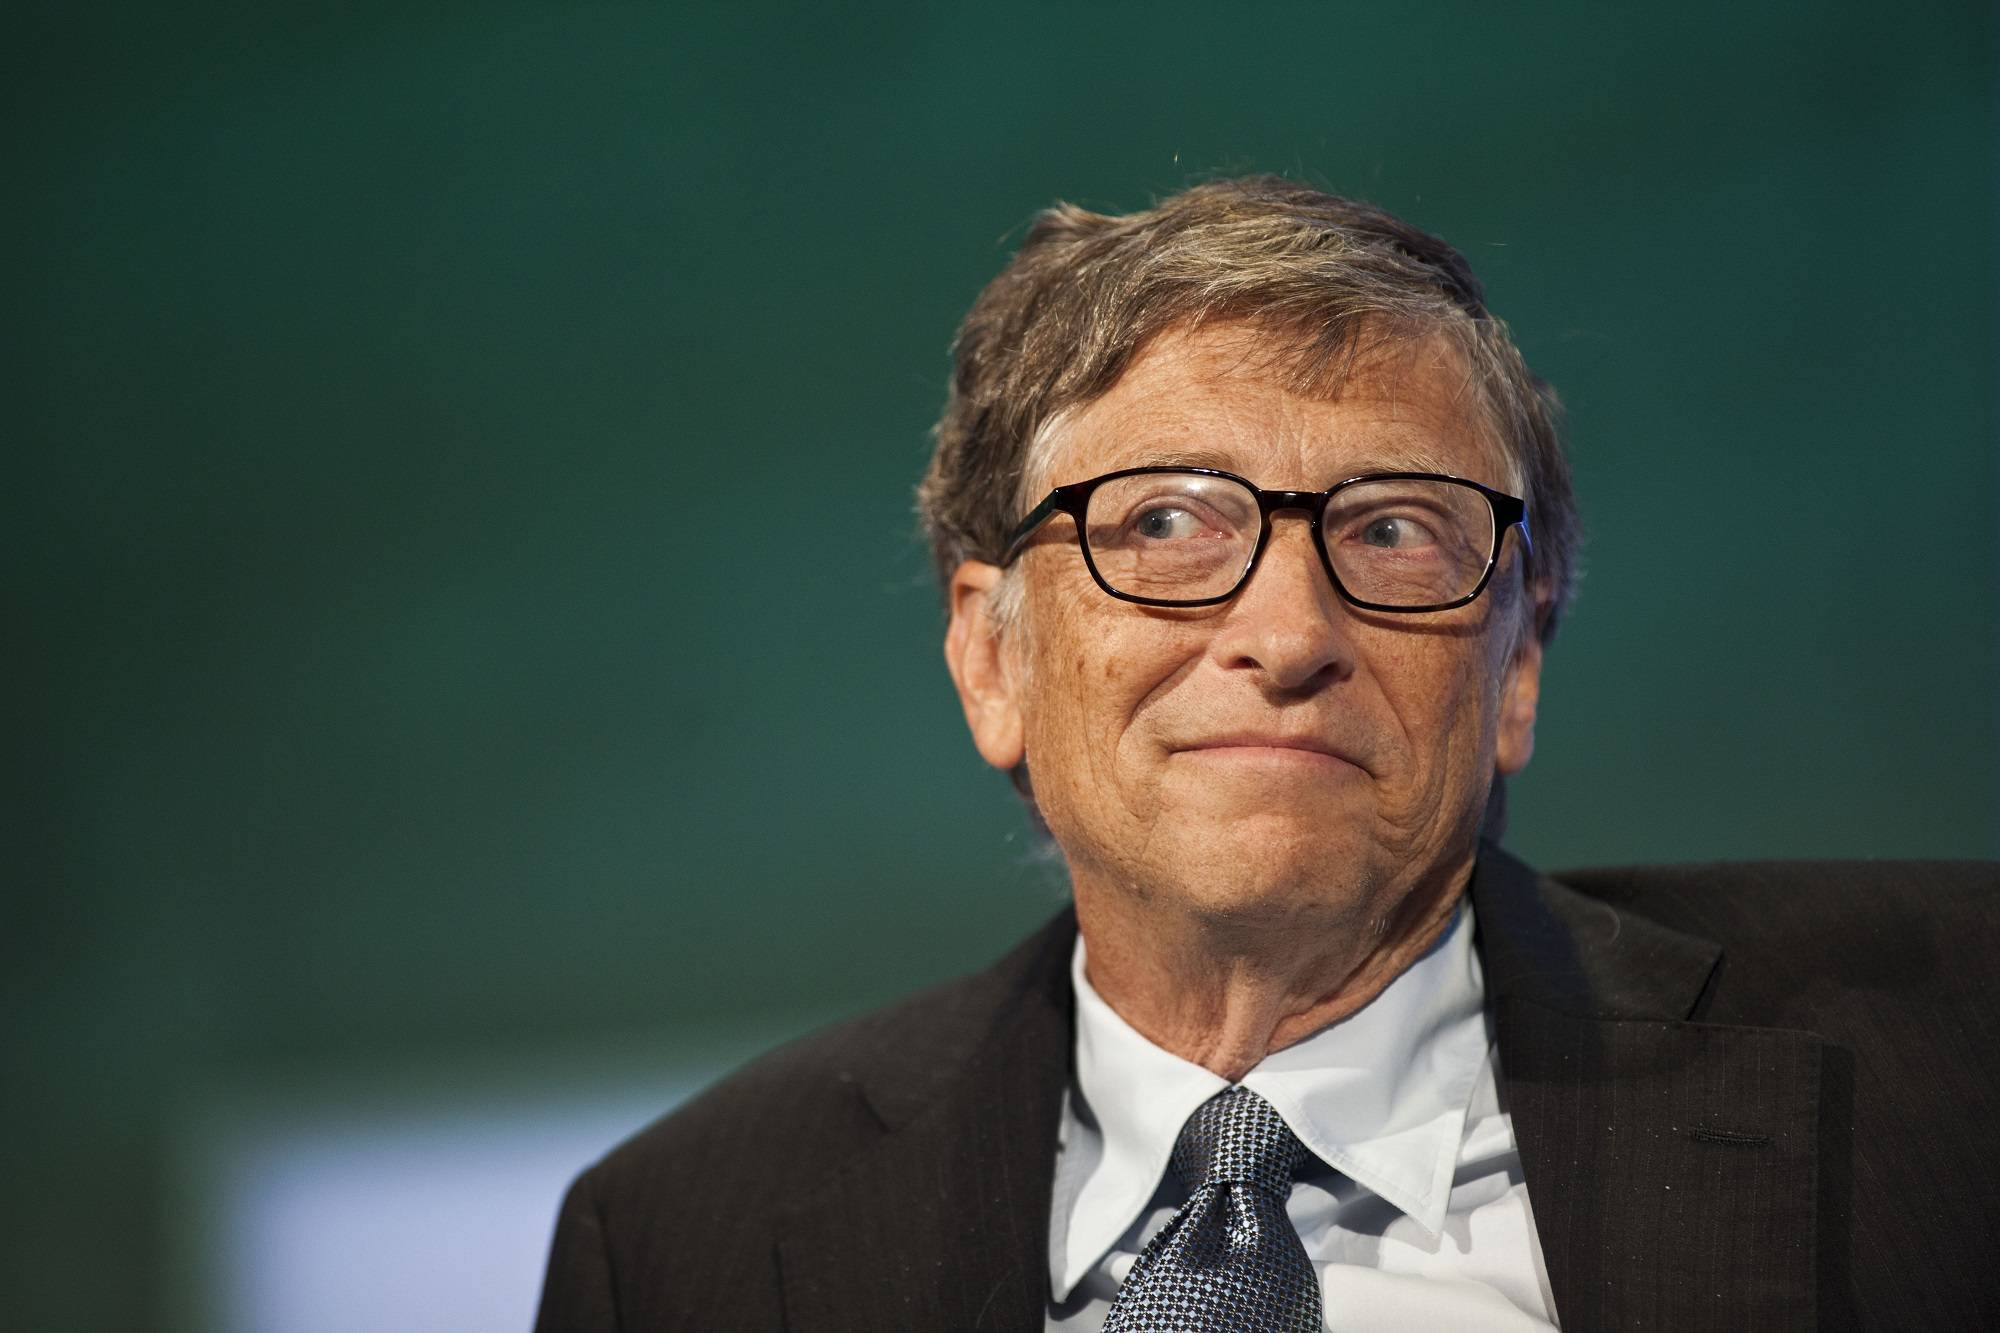 a biography of bill gates a ceo of microsoft See the fact file below for more information on bill gates or alternatively apple ceo, steve jobs invited microsoft to develop software compatible with macintosh.